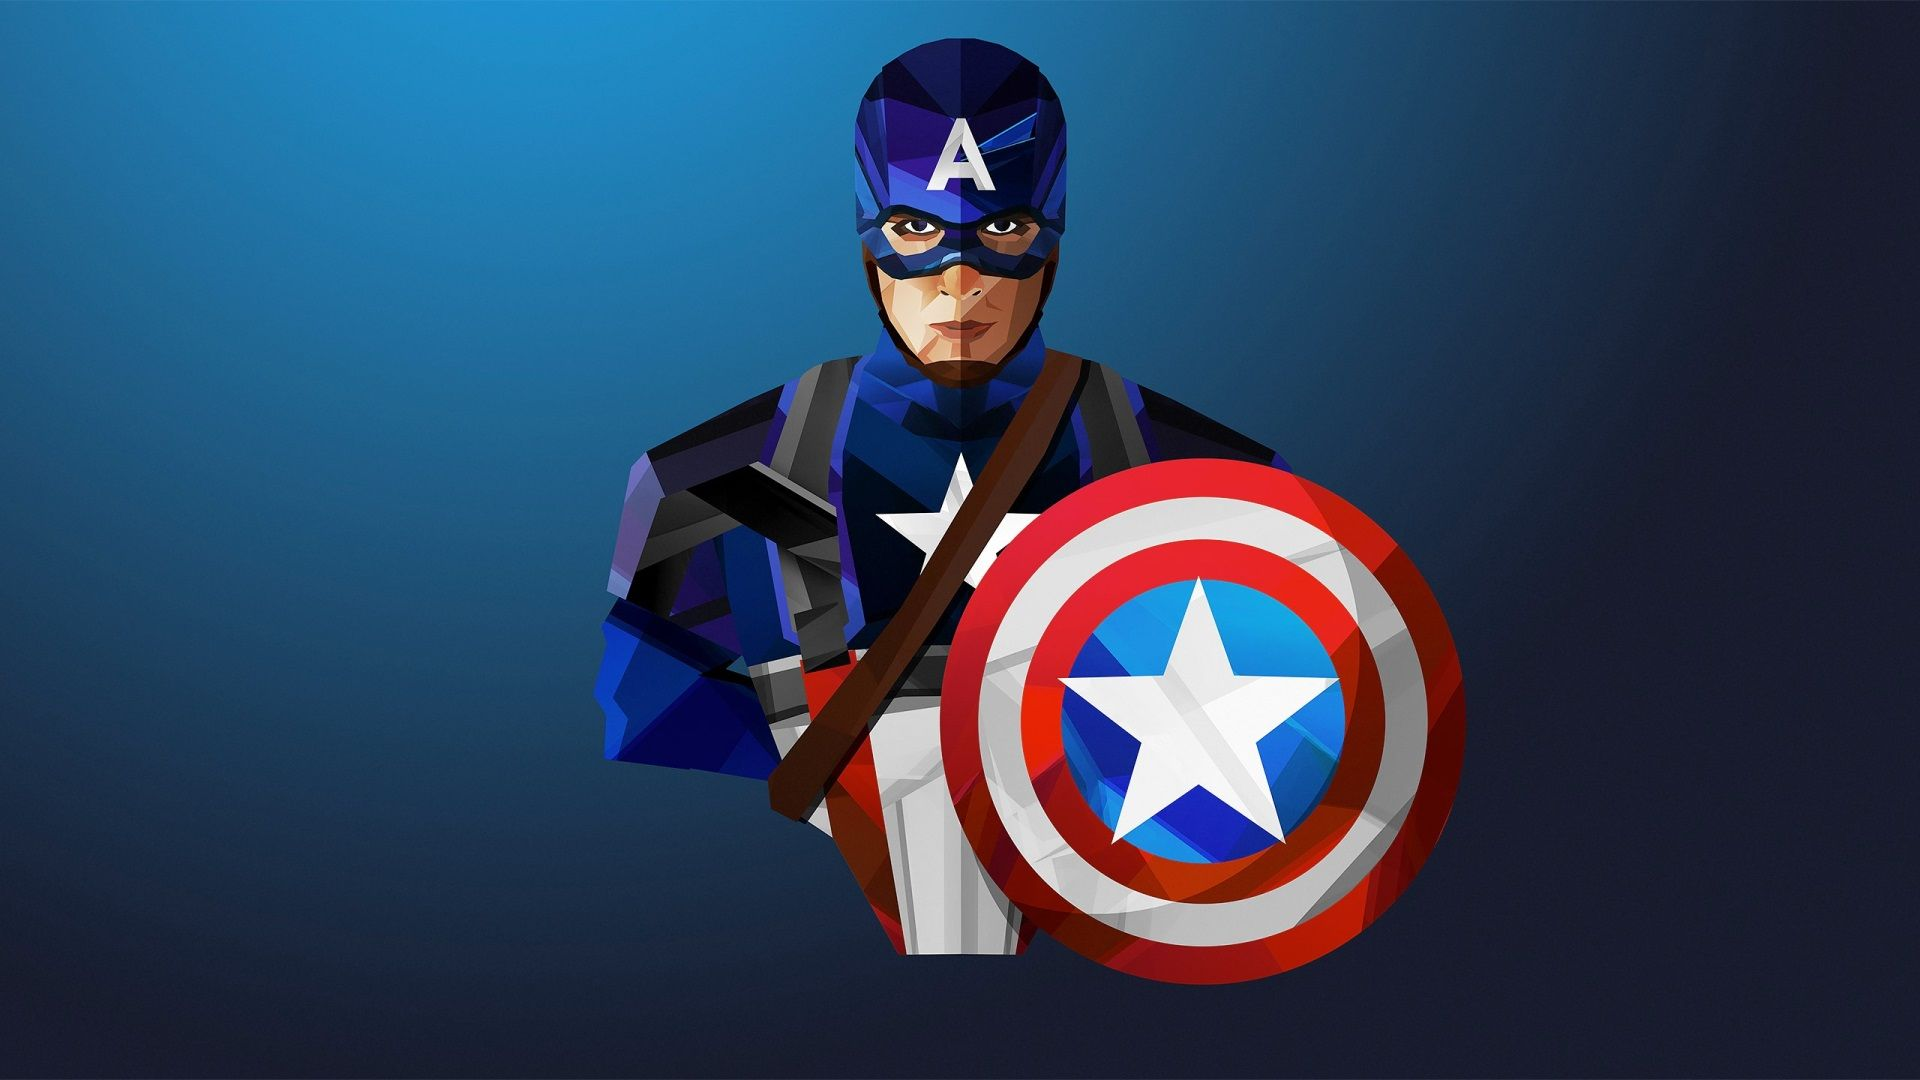 1920x1080 Captain America Wallpapers 1080p High Quality In 2020 Captain America Wallpaper Justin Maller Captain America